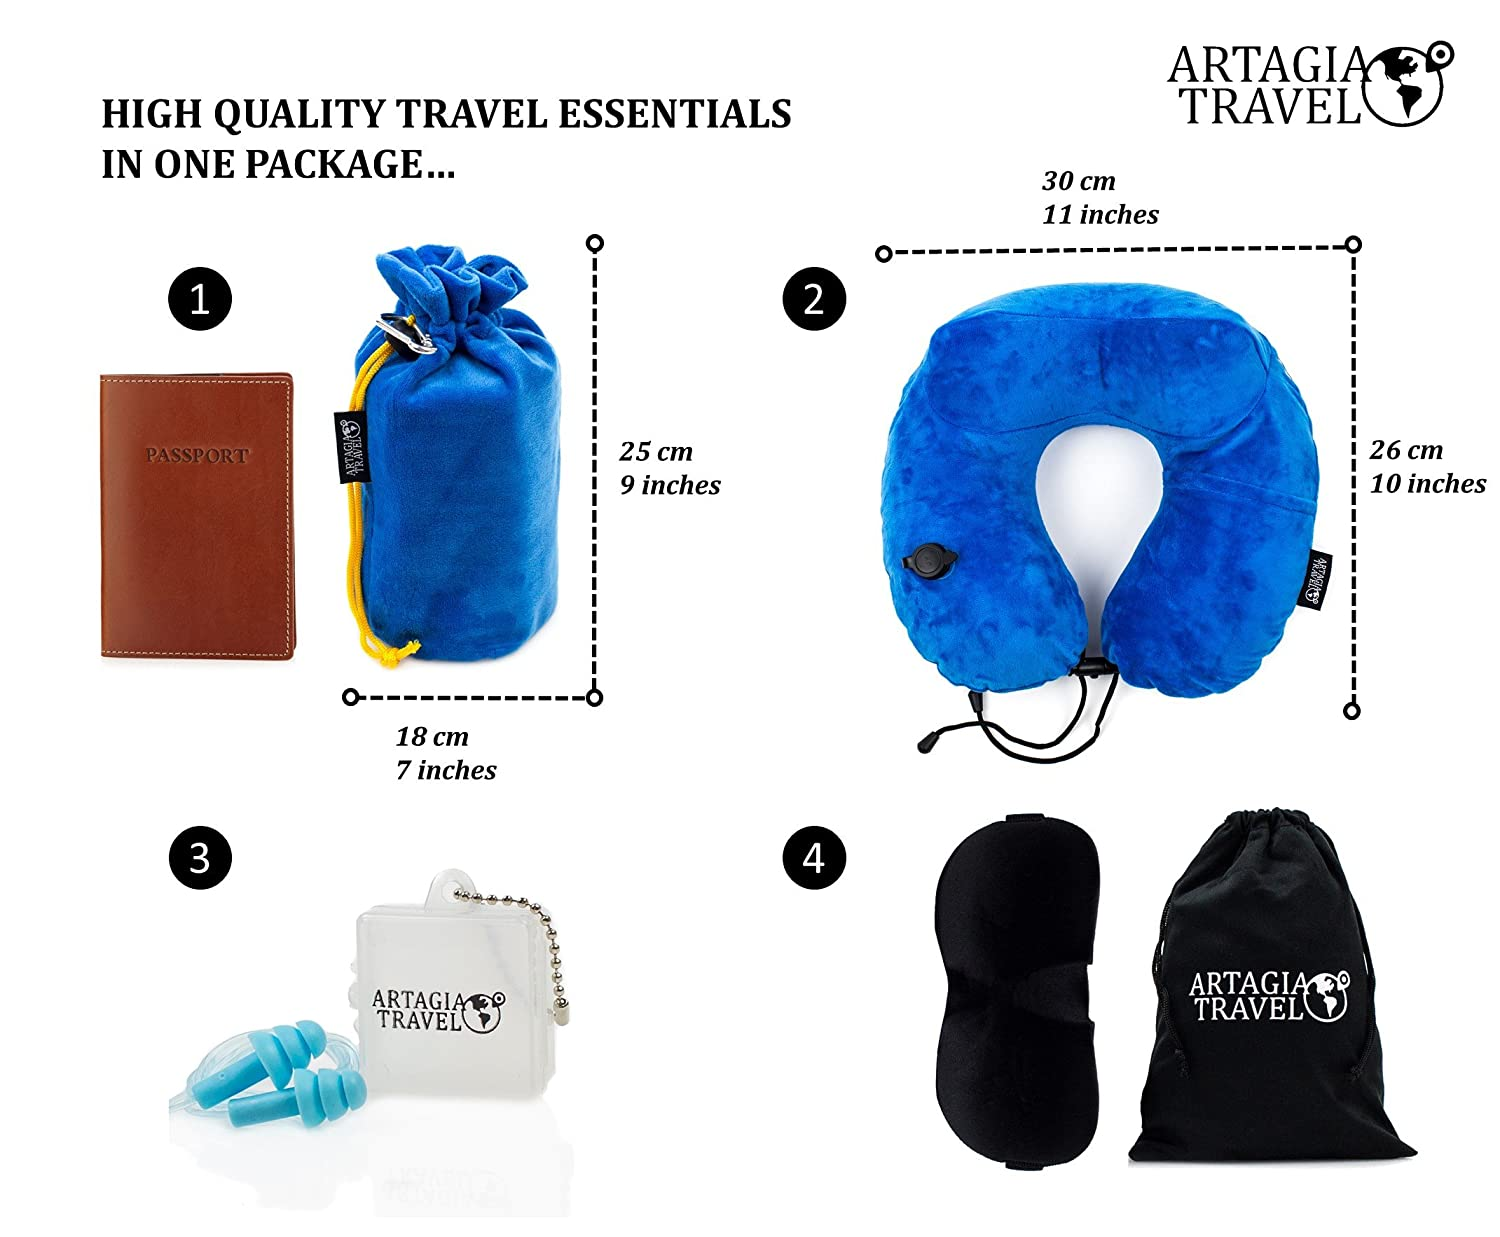 Luxury Pump Inflatable Travel Pillow 3 in 1 Travel Pack High Fidelity Ear Plugs Travel Package Completely Comfortable Travel Artagia Luxury 3D Travel Mask